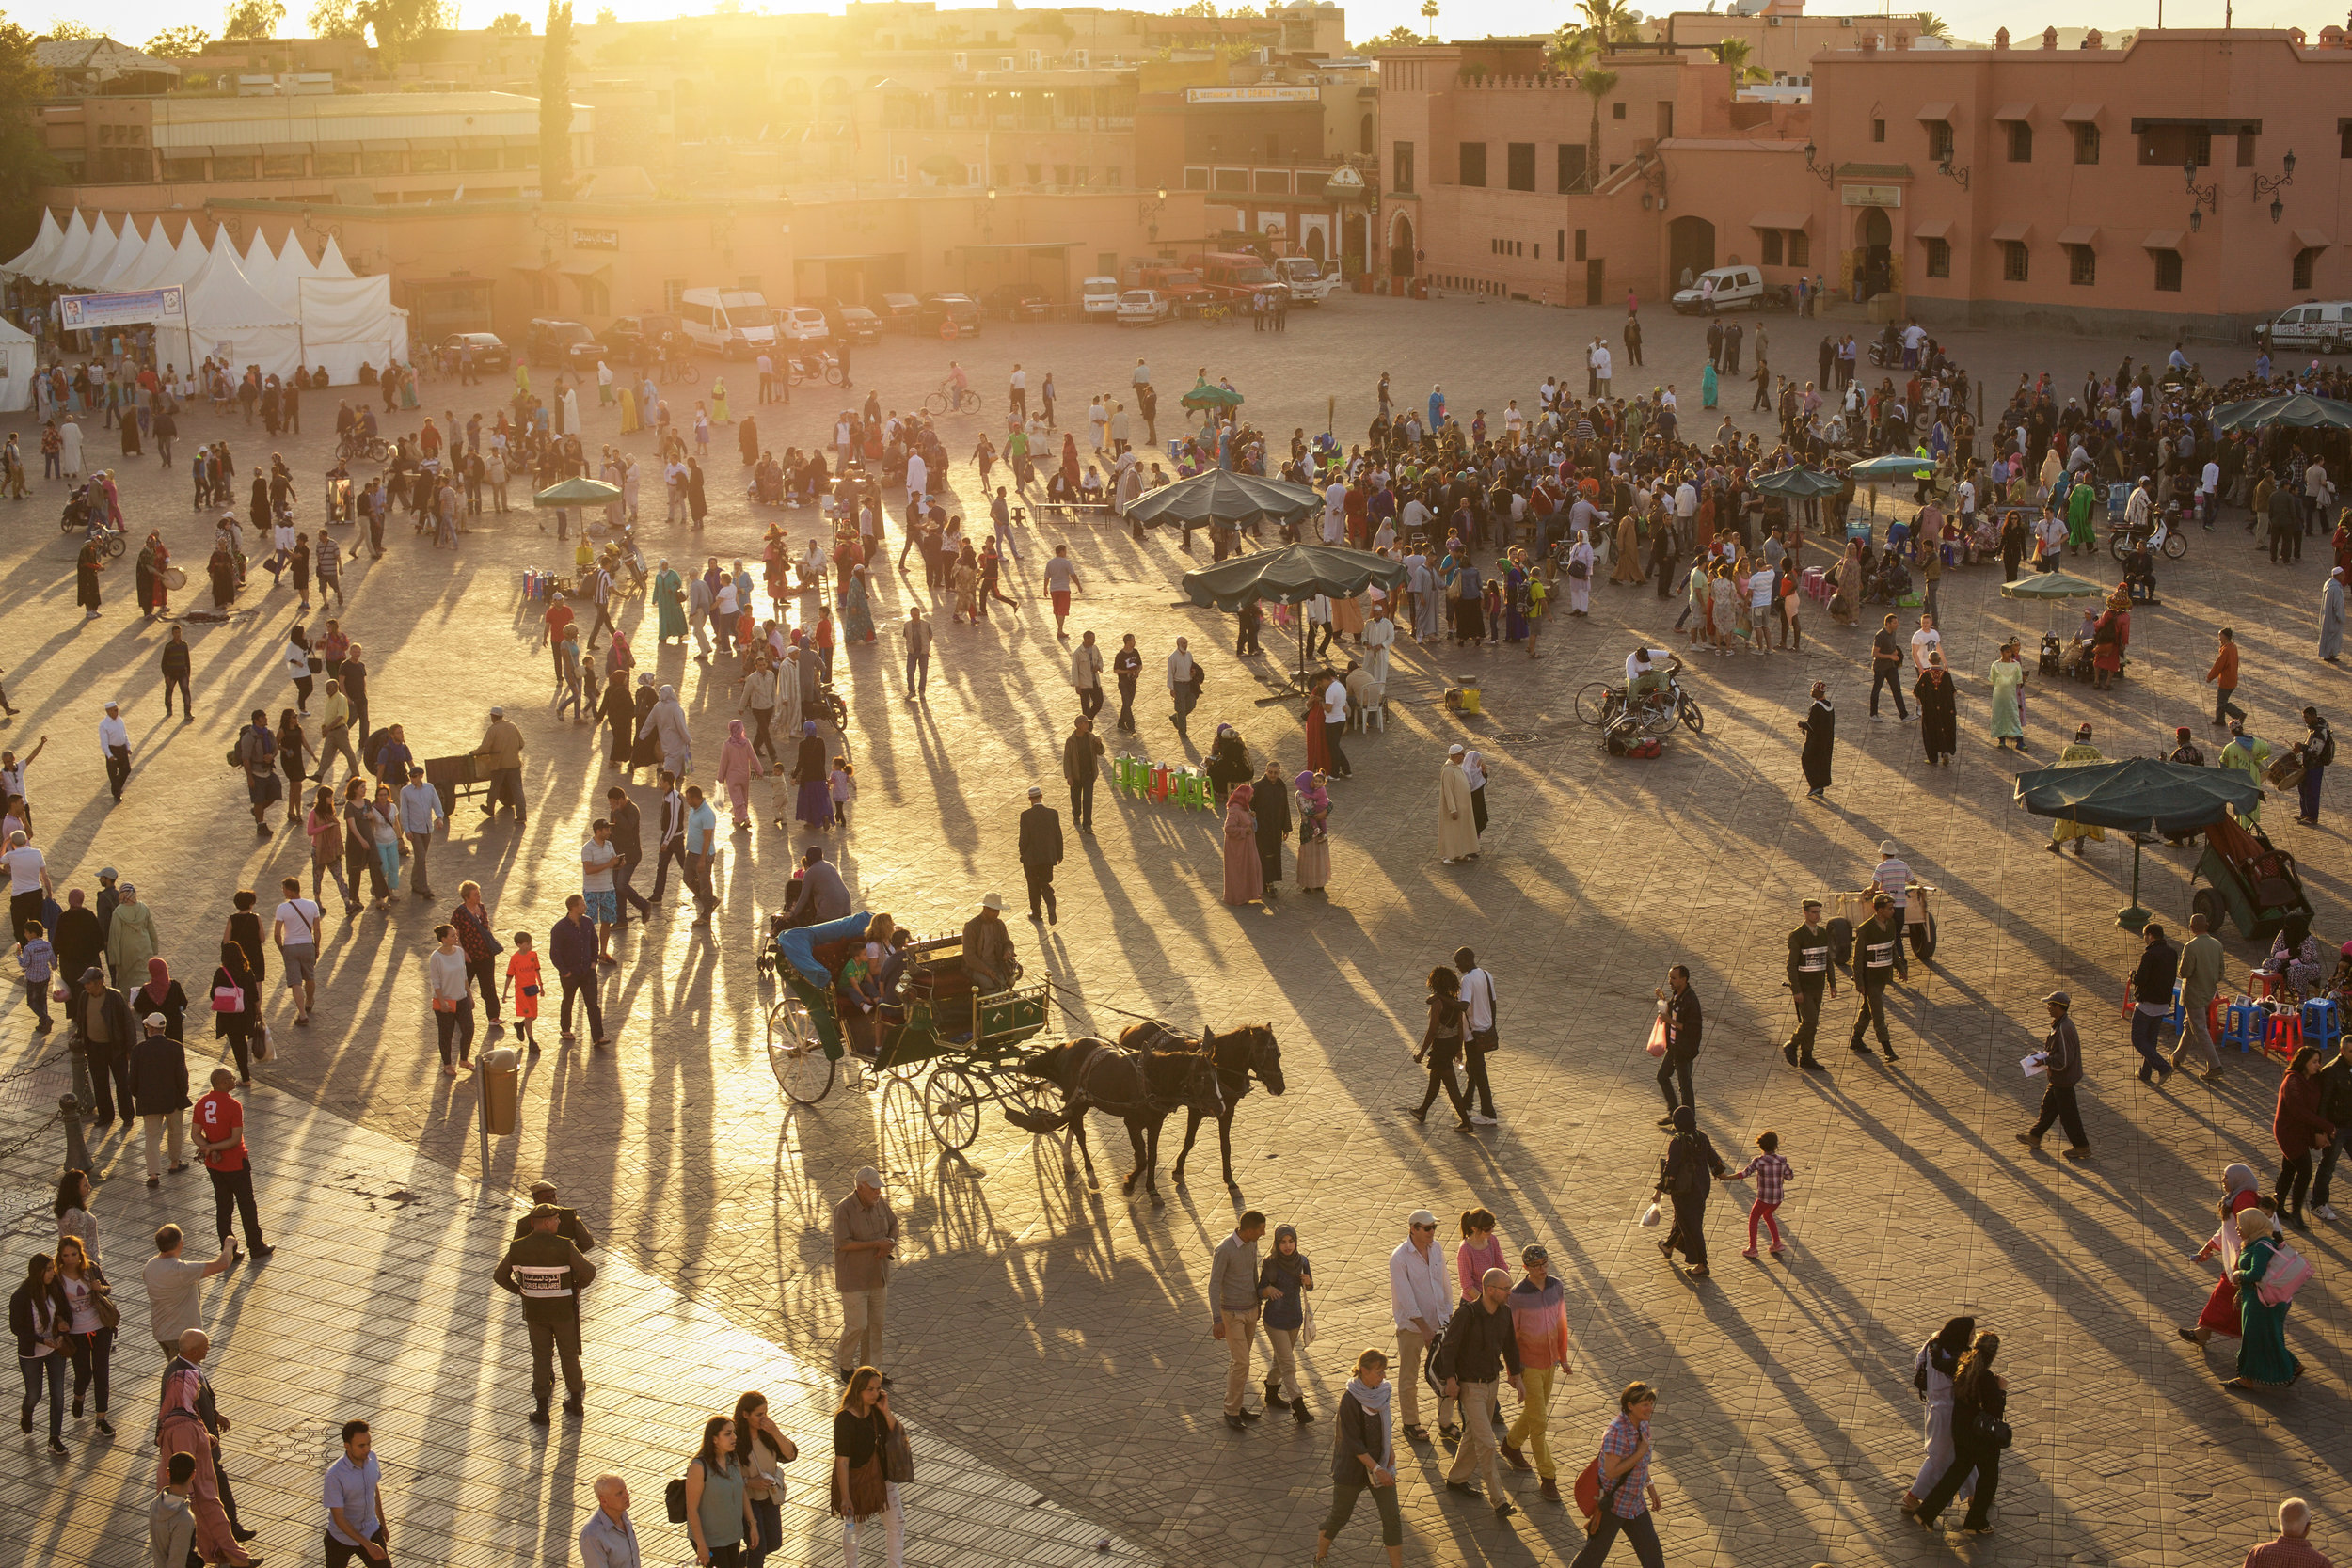 Sunset over Jemaa el-Fnaa, the main square and market place in Marrakesh's medina quarter.